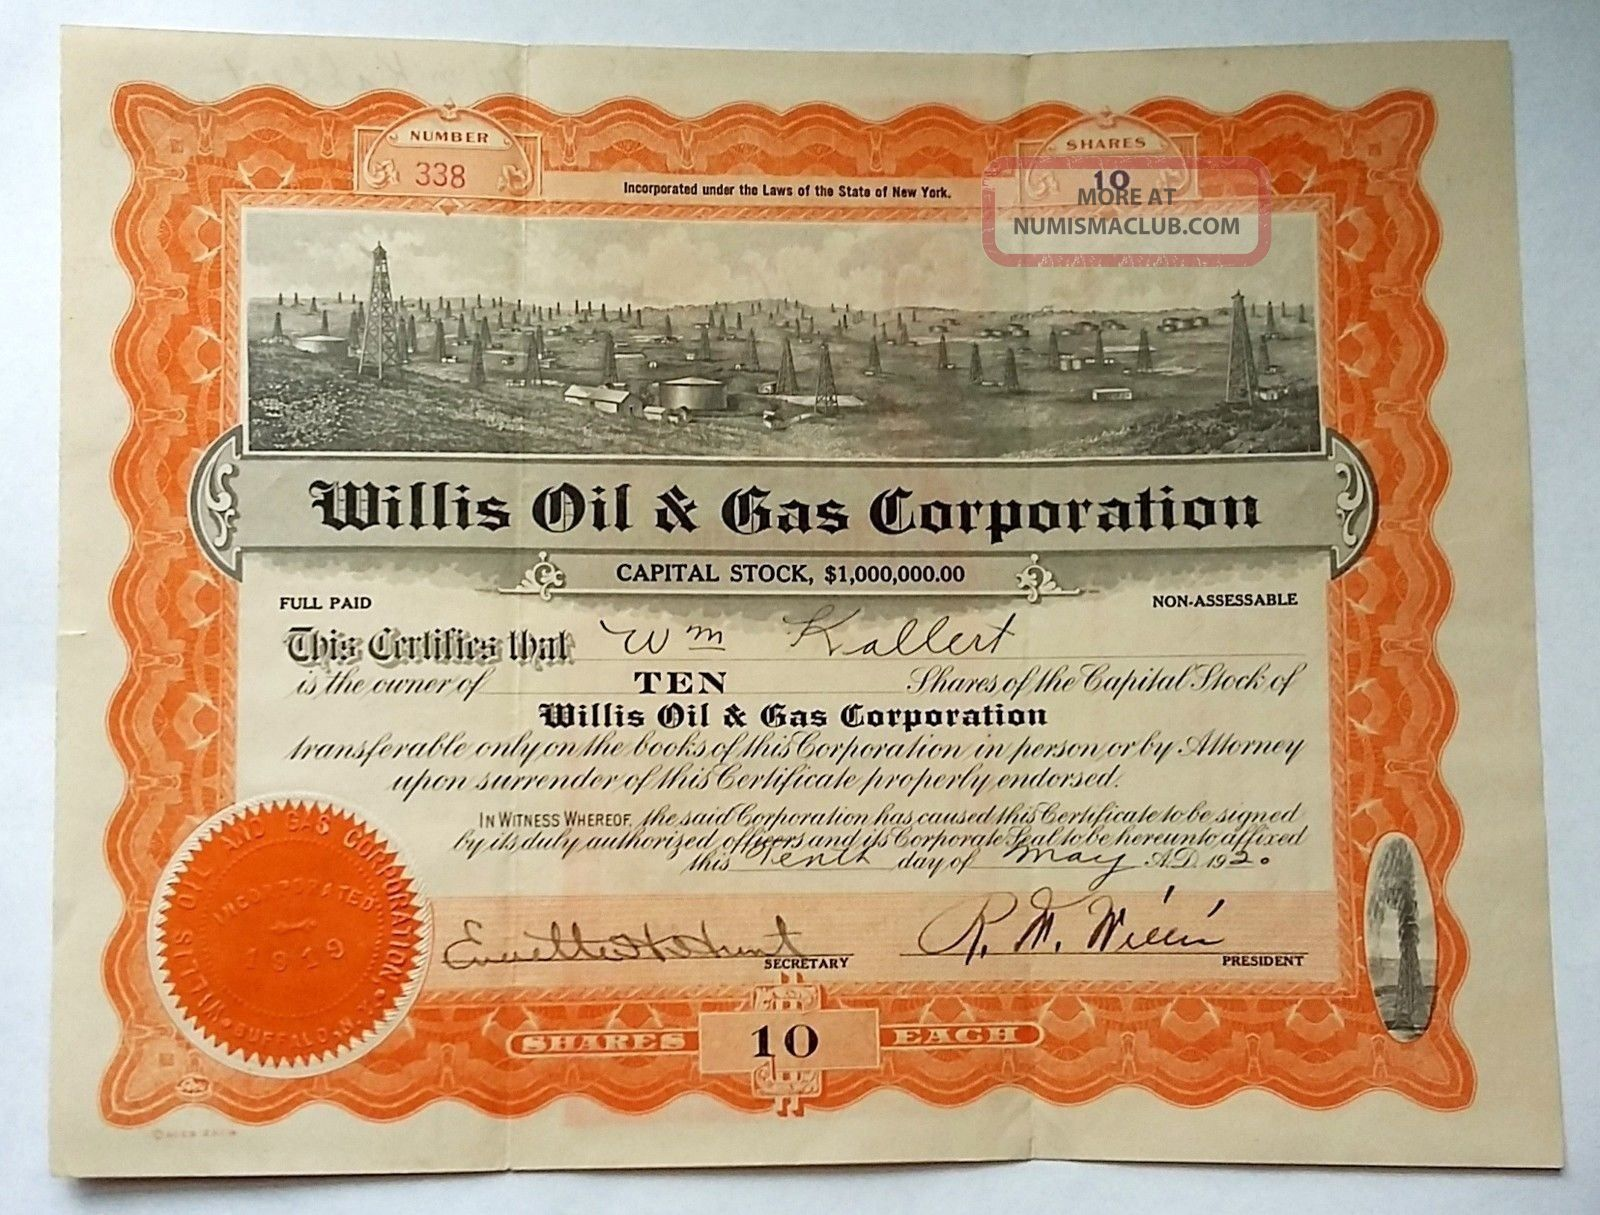 1920 Stock Certificate,  Willis Oil & Gas Corporation,  Oil Wells Graphic Stocks & Bonds, Scripophily photo